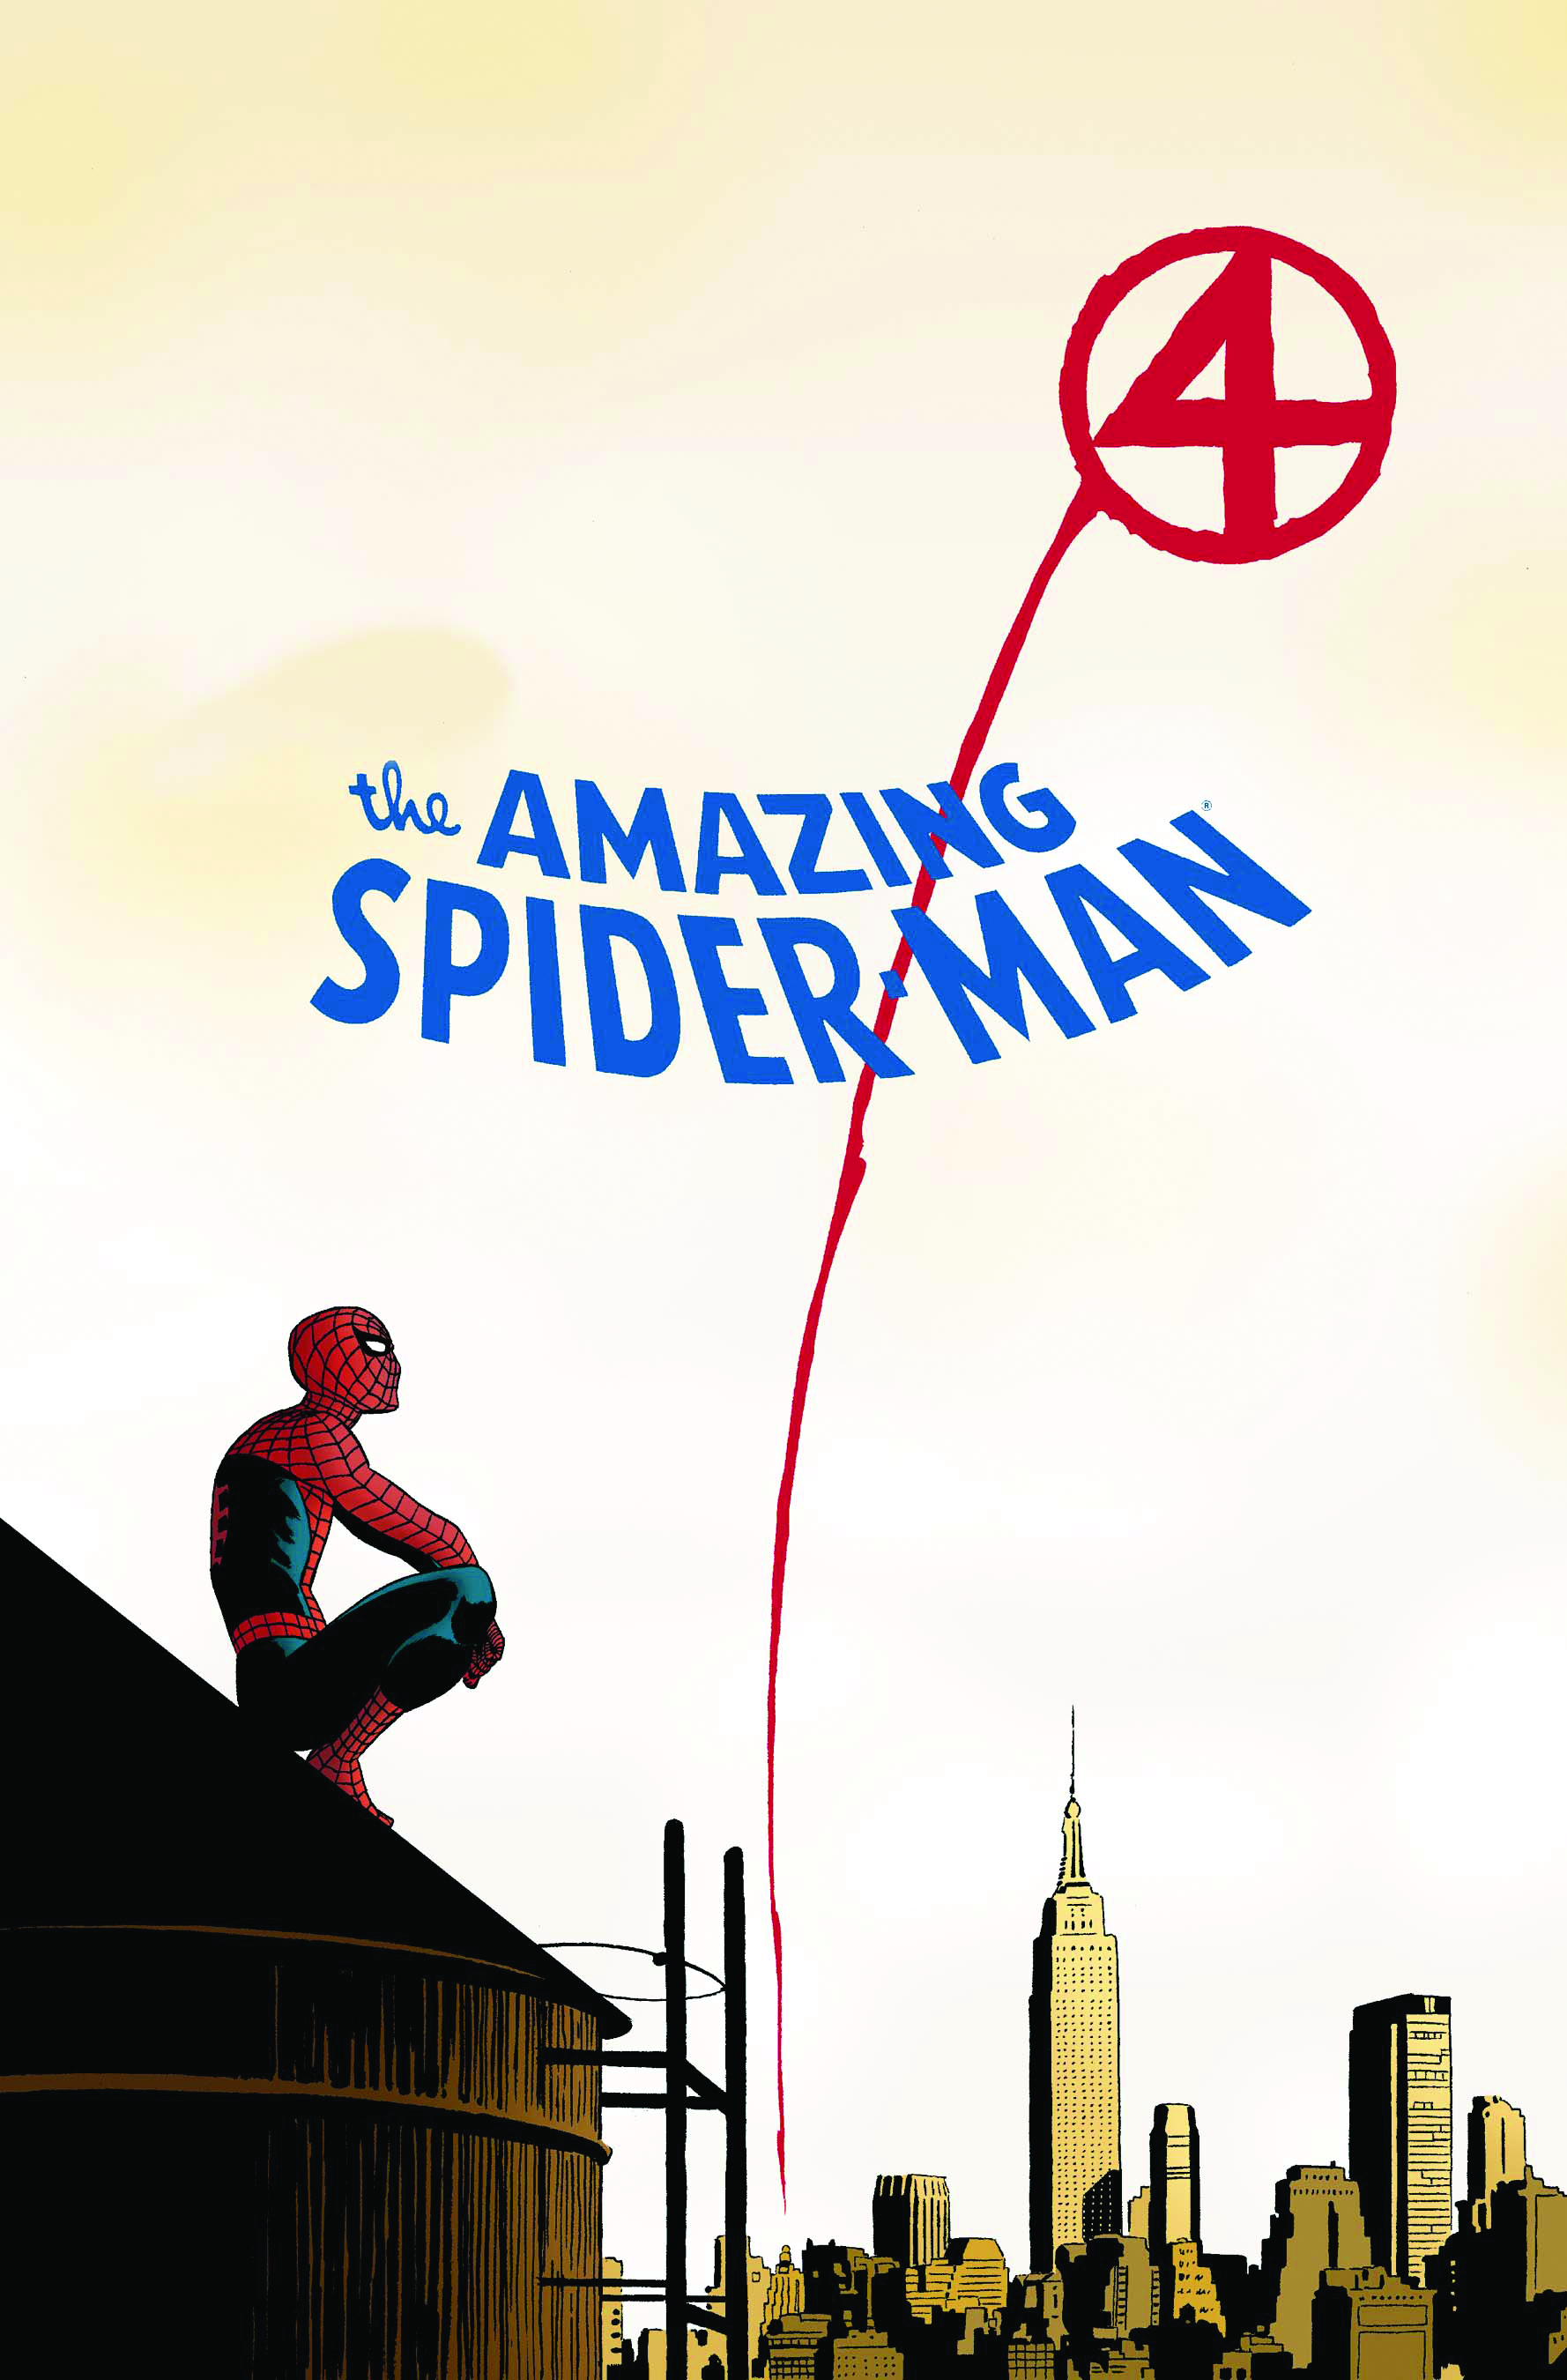 AMAZING SPIDER-MAN #657 BIG